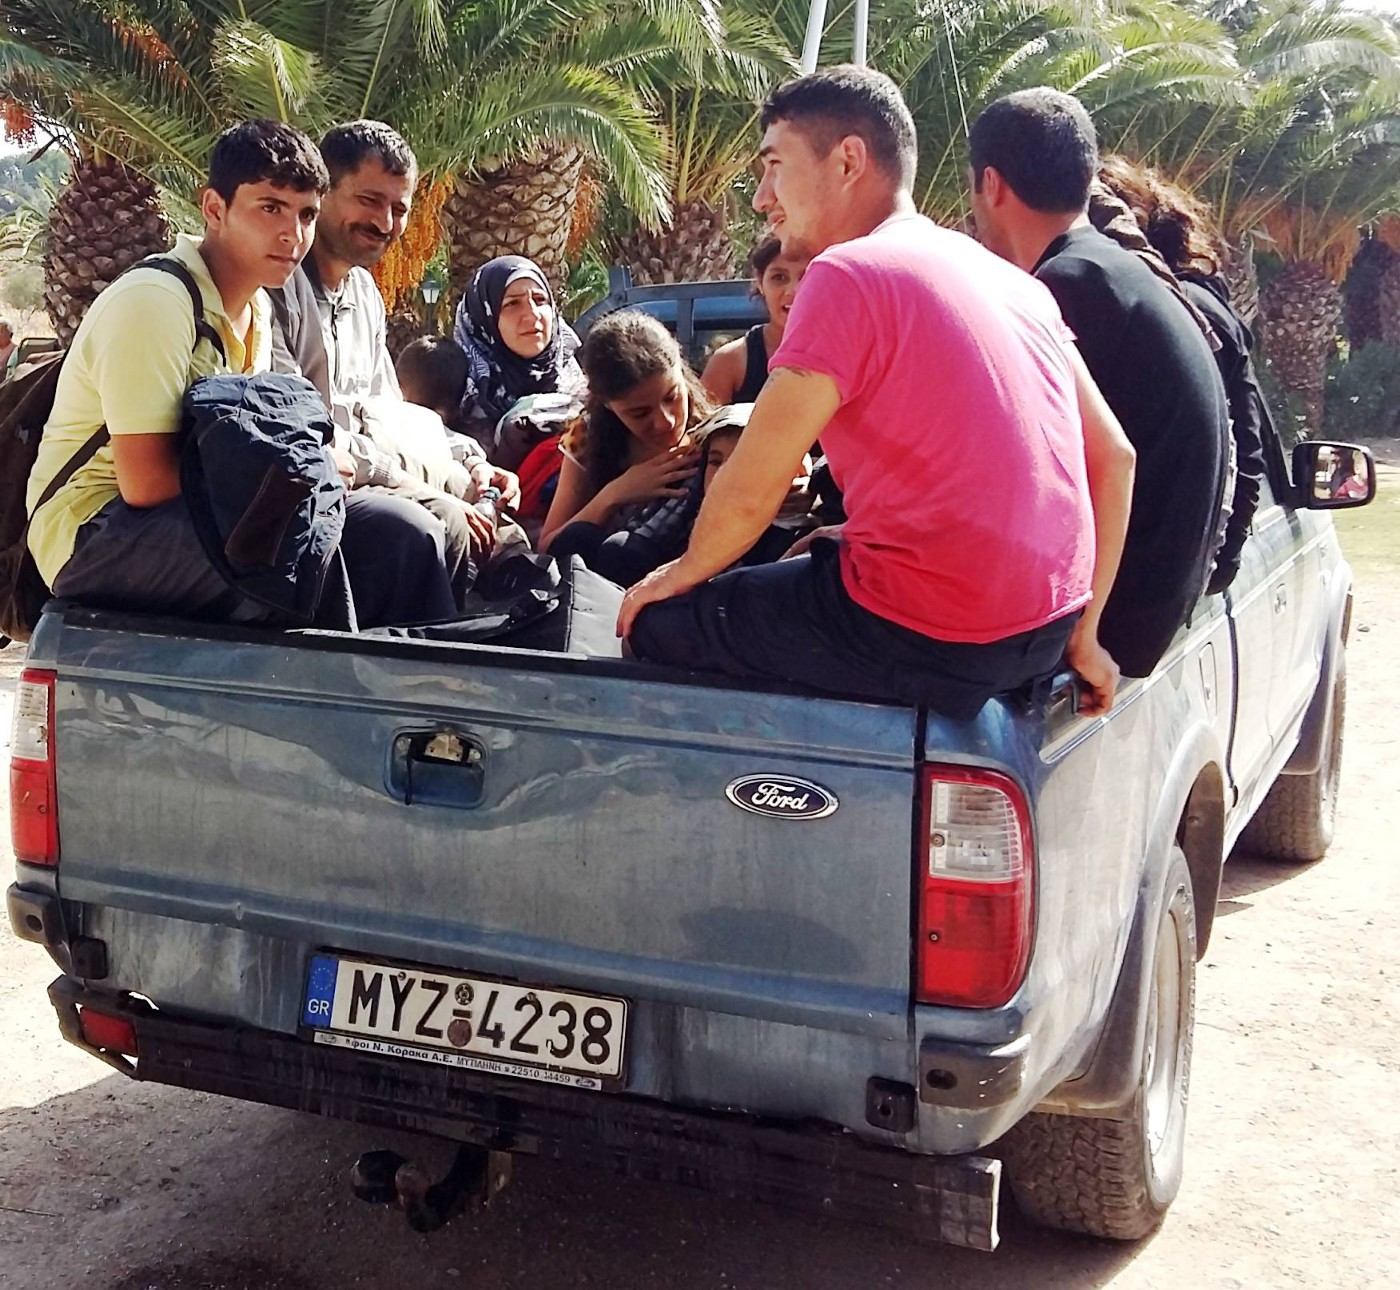 A family loads into the back of a truck at Aphrodite's hotel.